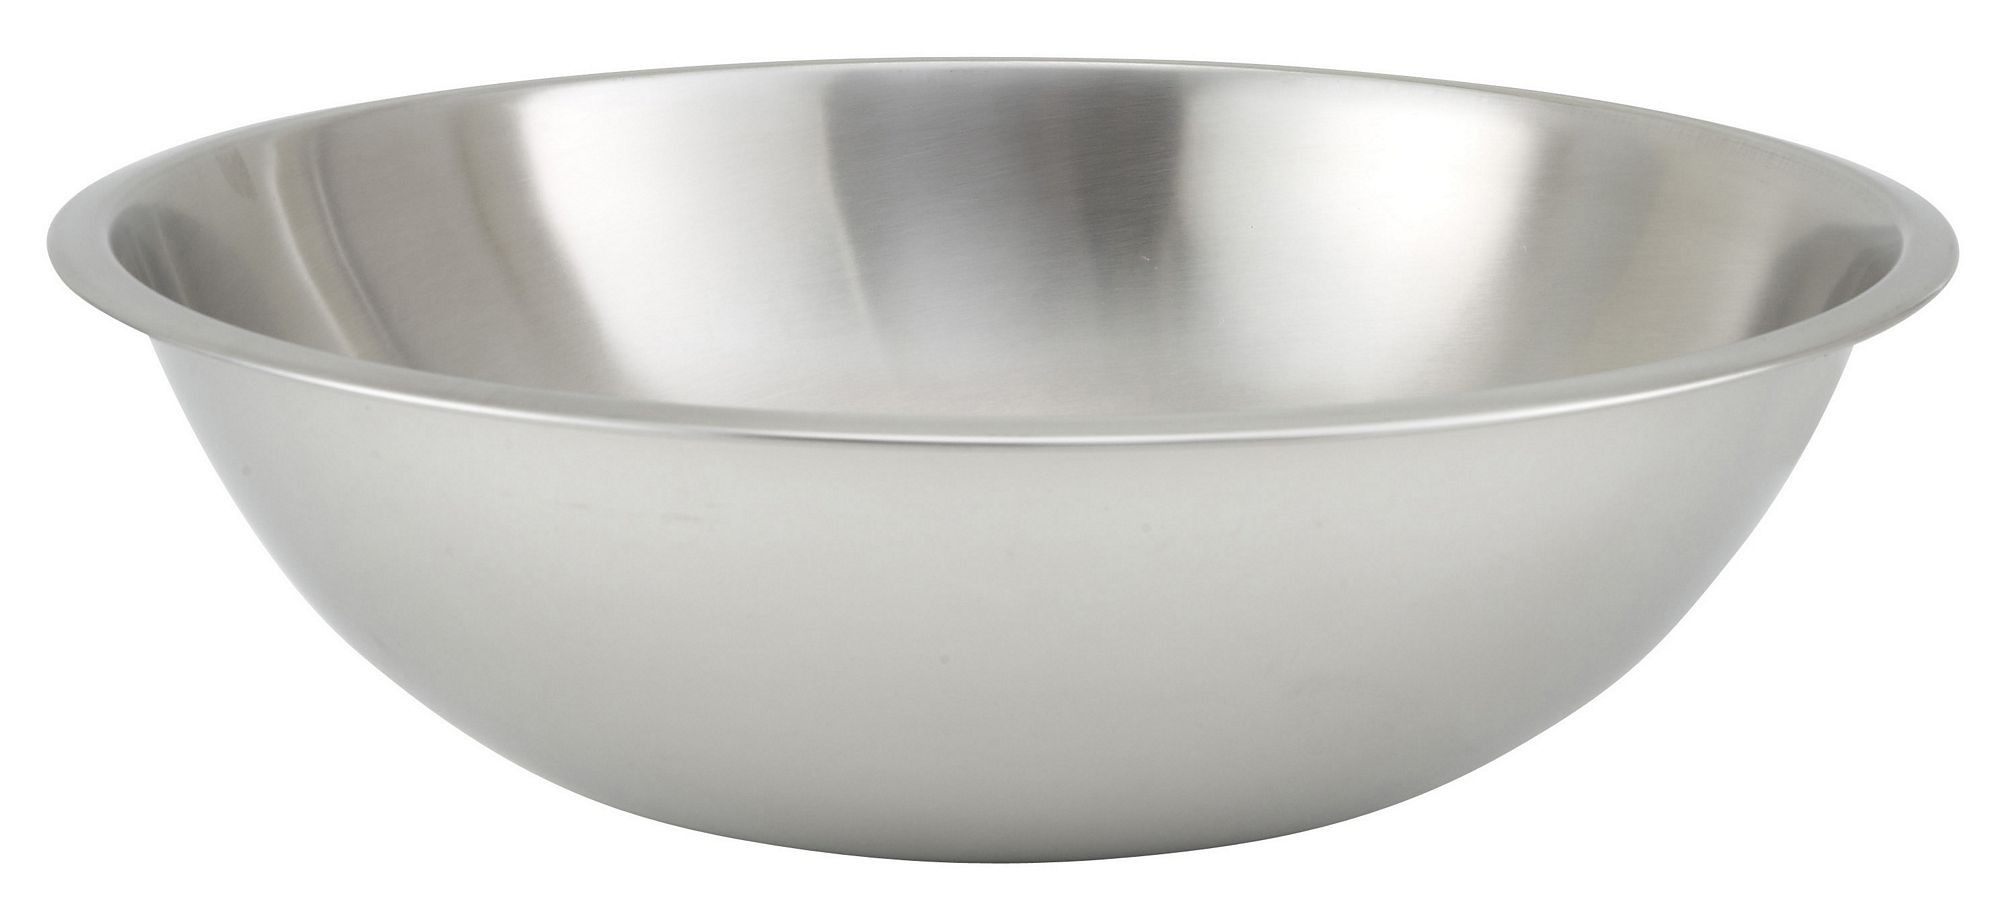 Winco MXHV-1600 Heavy Duty Stainless Steel 16 Qt. Mixing Bowl